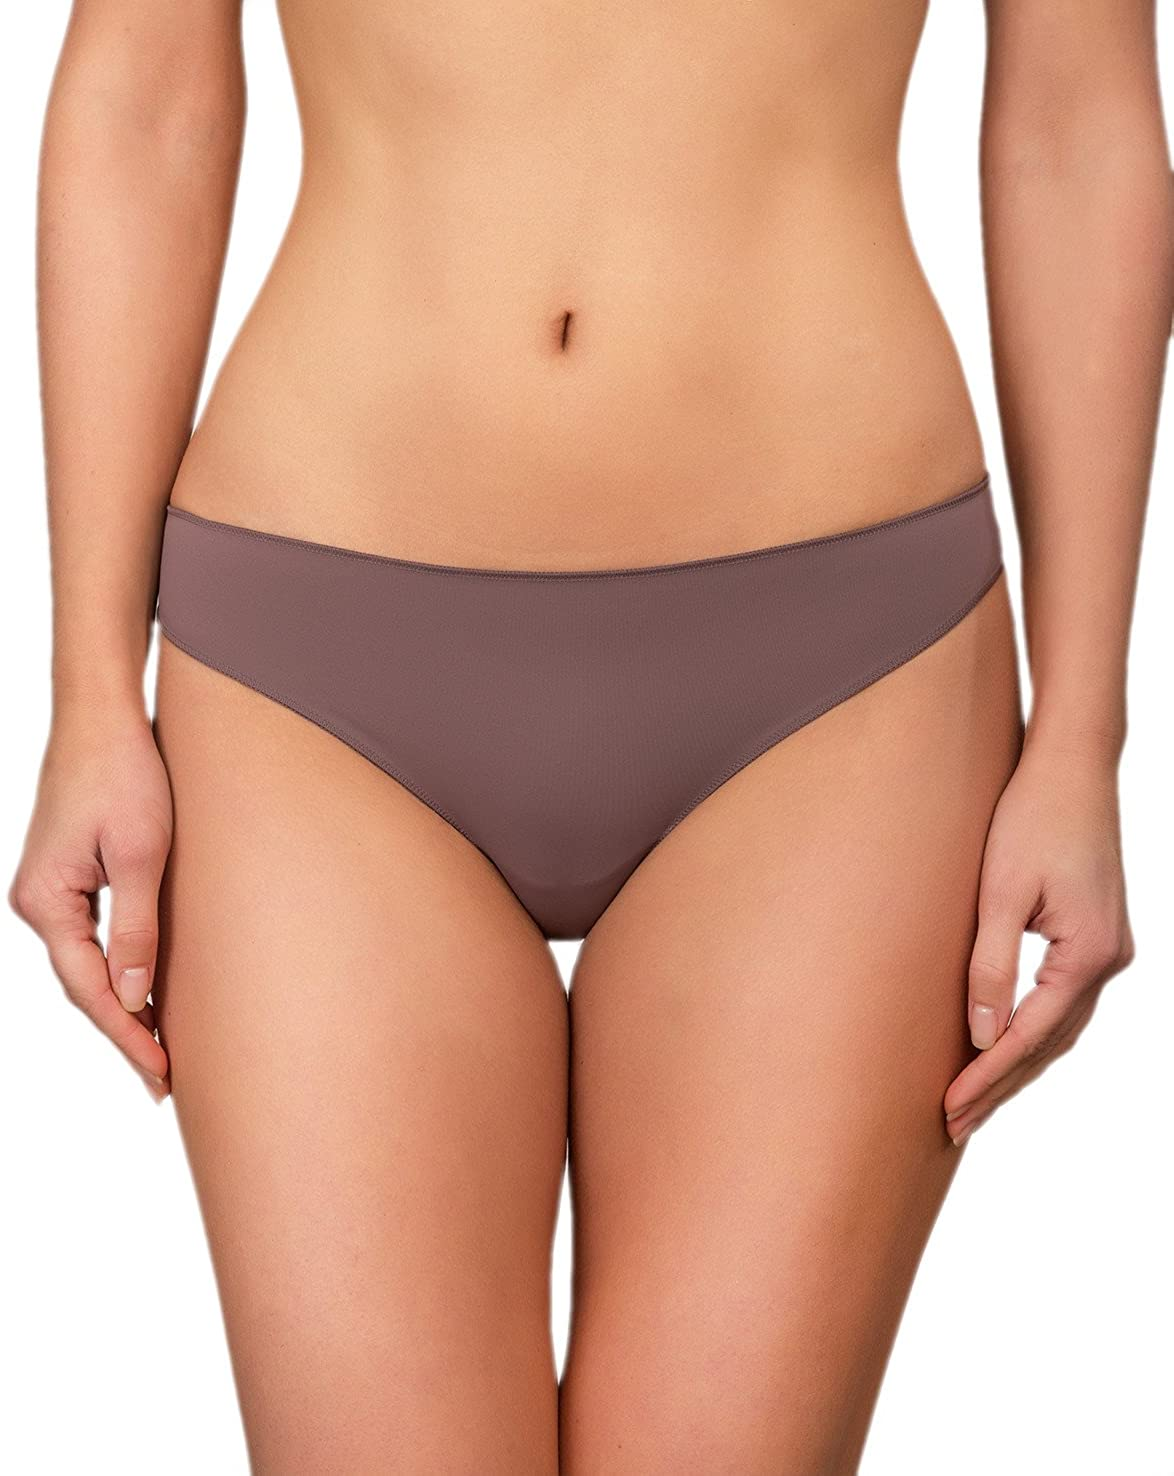 Rosme New Womens Thongs/Strings, Collection Basic Classic